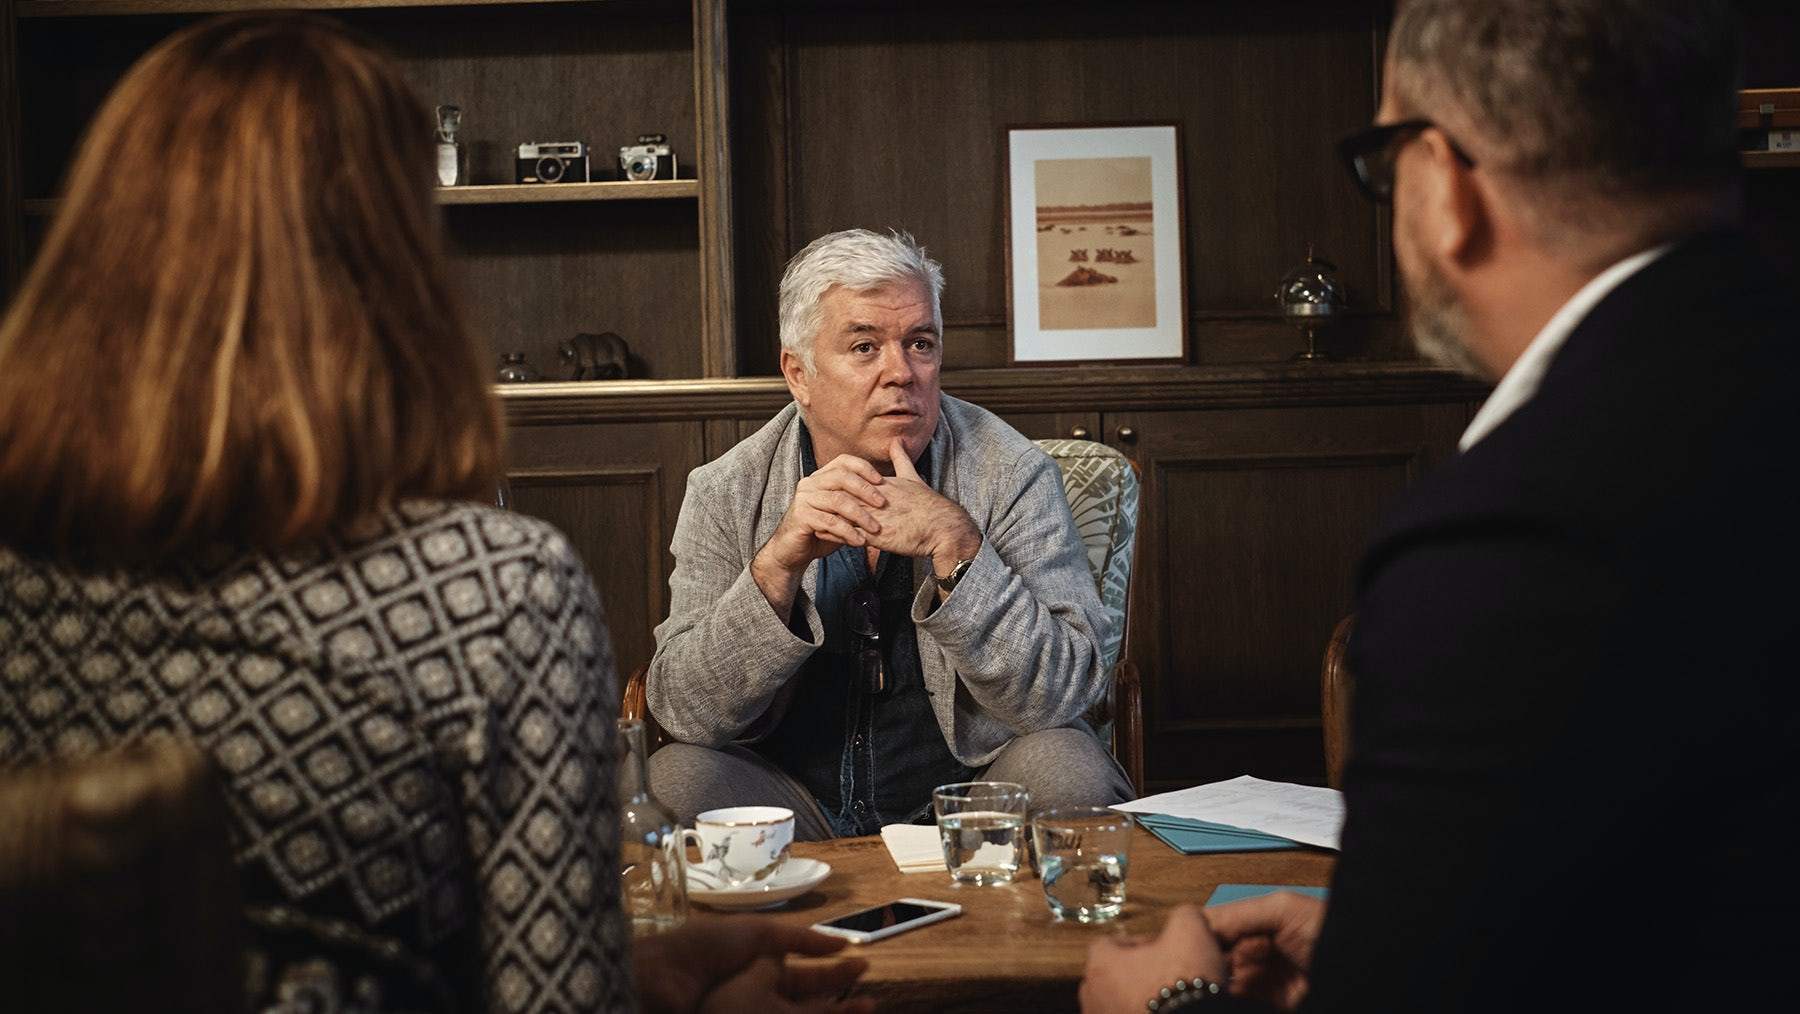 BoF's Tim Blanks chairs a discussion on the flaws of the current fashion system | Photo: Mark Sanders for BoF